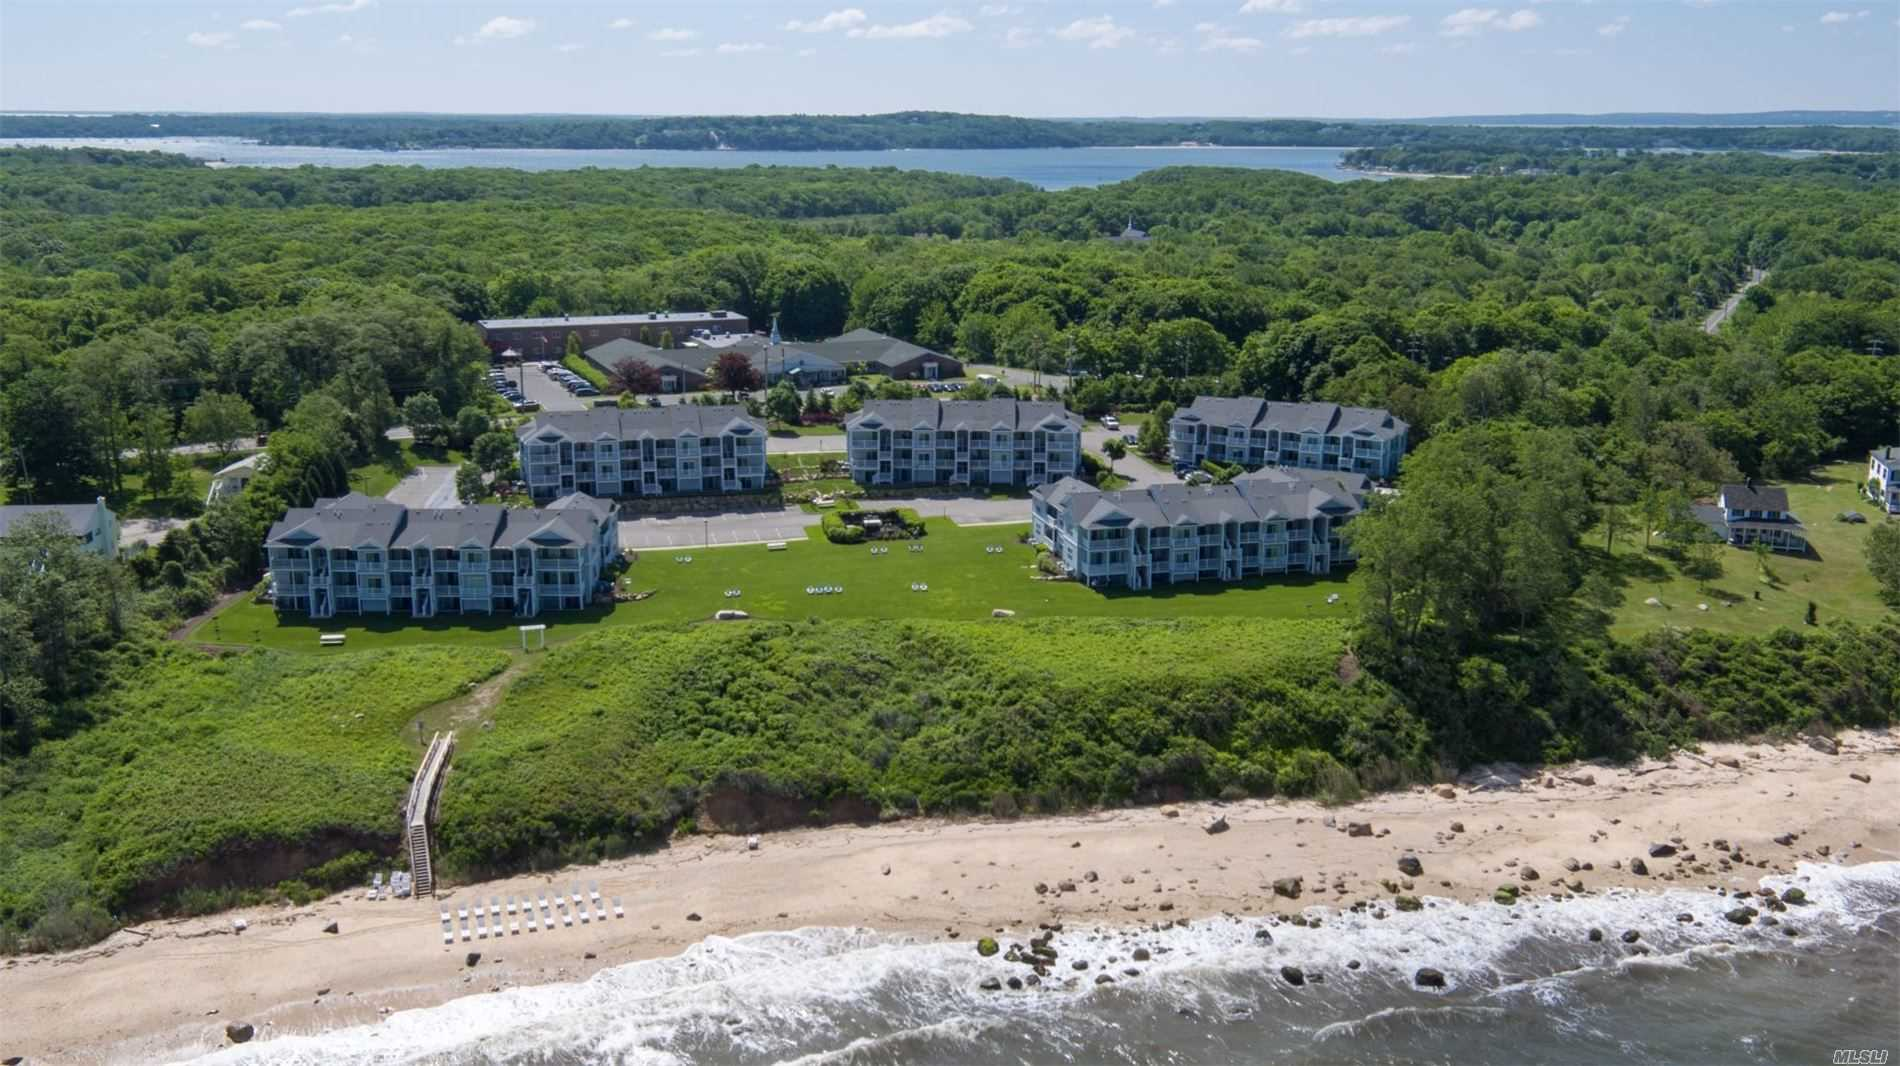 Property for sale at 61475 County Road 48 # A206, Greenport NY 11944, Greenport,  New York 11944